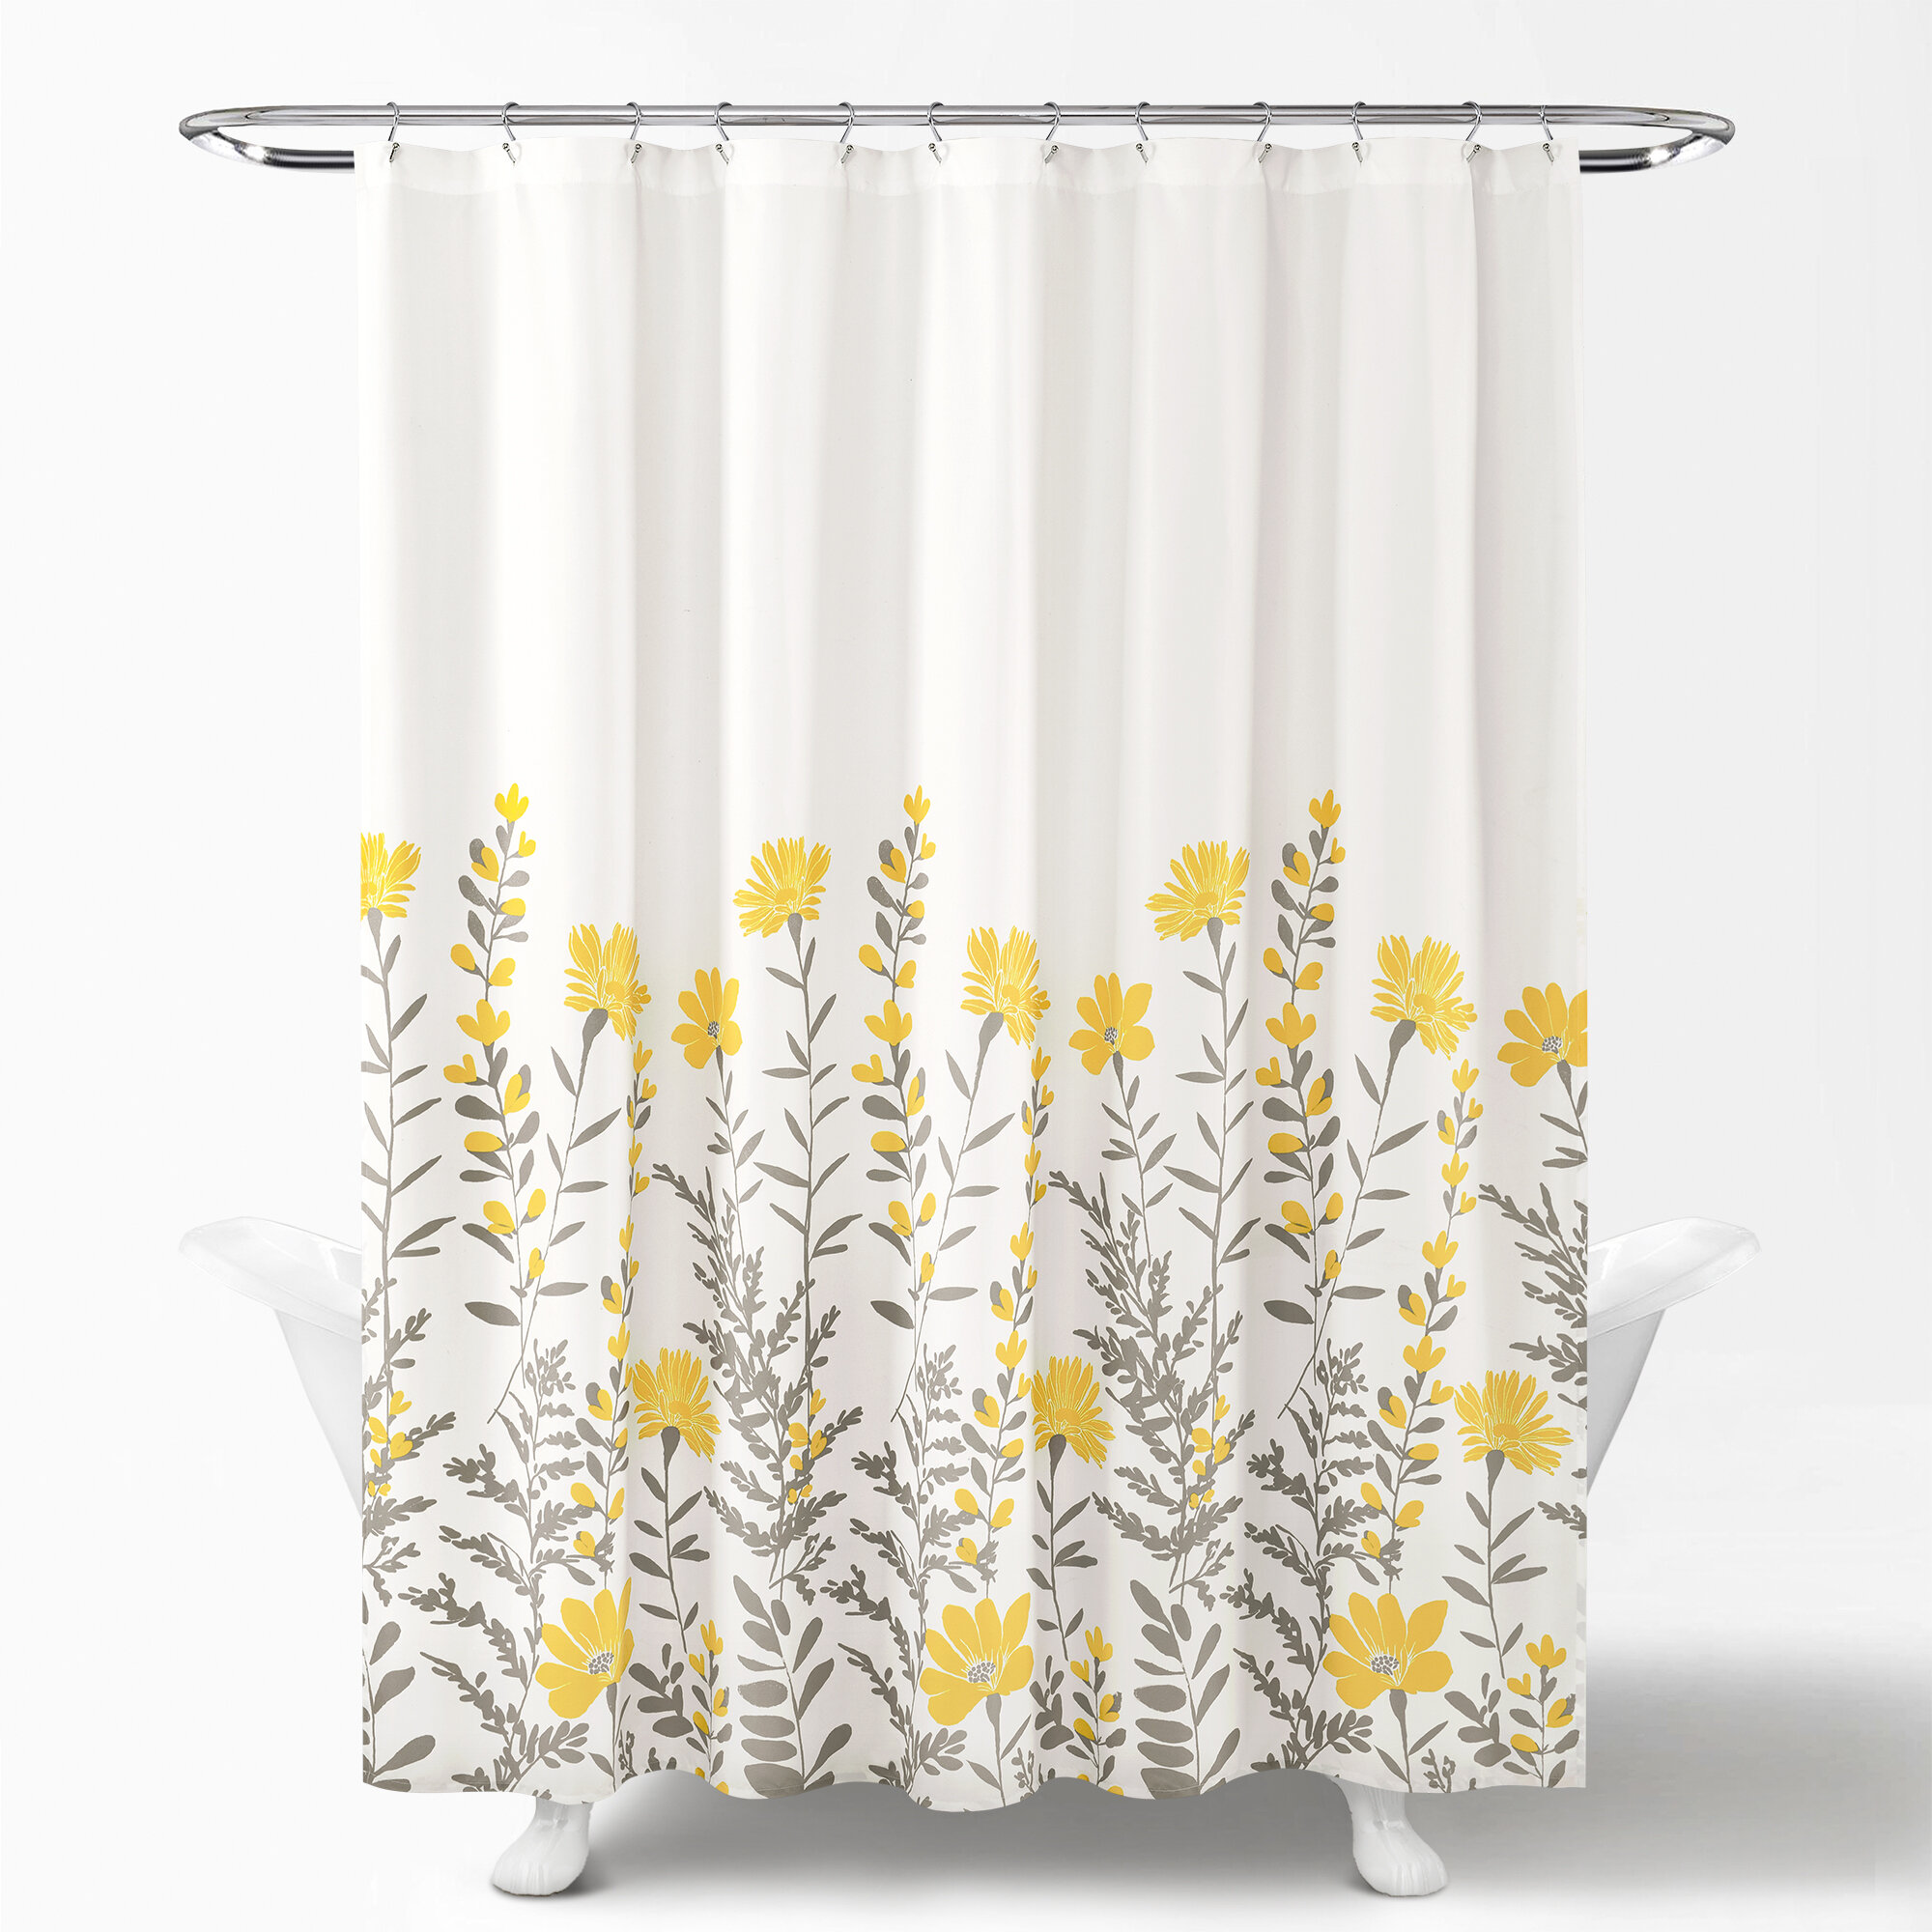 Nature Floral Shower Curtains Shower Liners Free Shipping Over 35 Wayfair